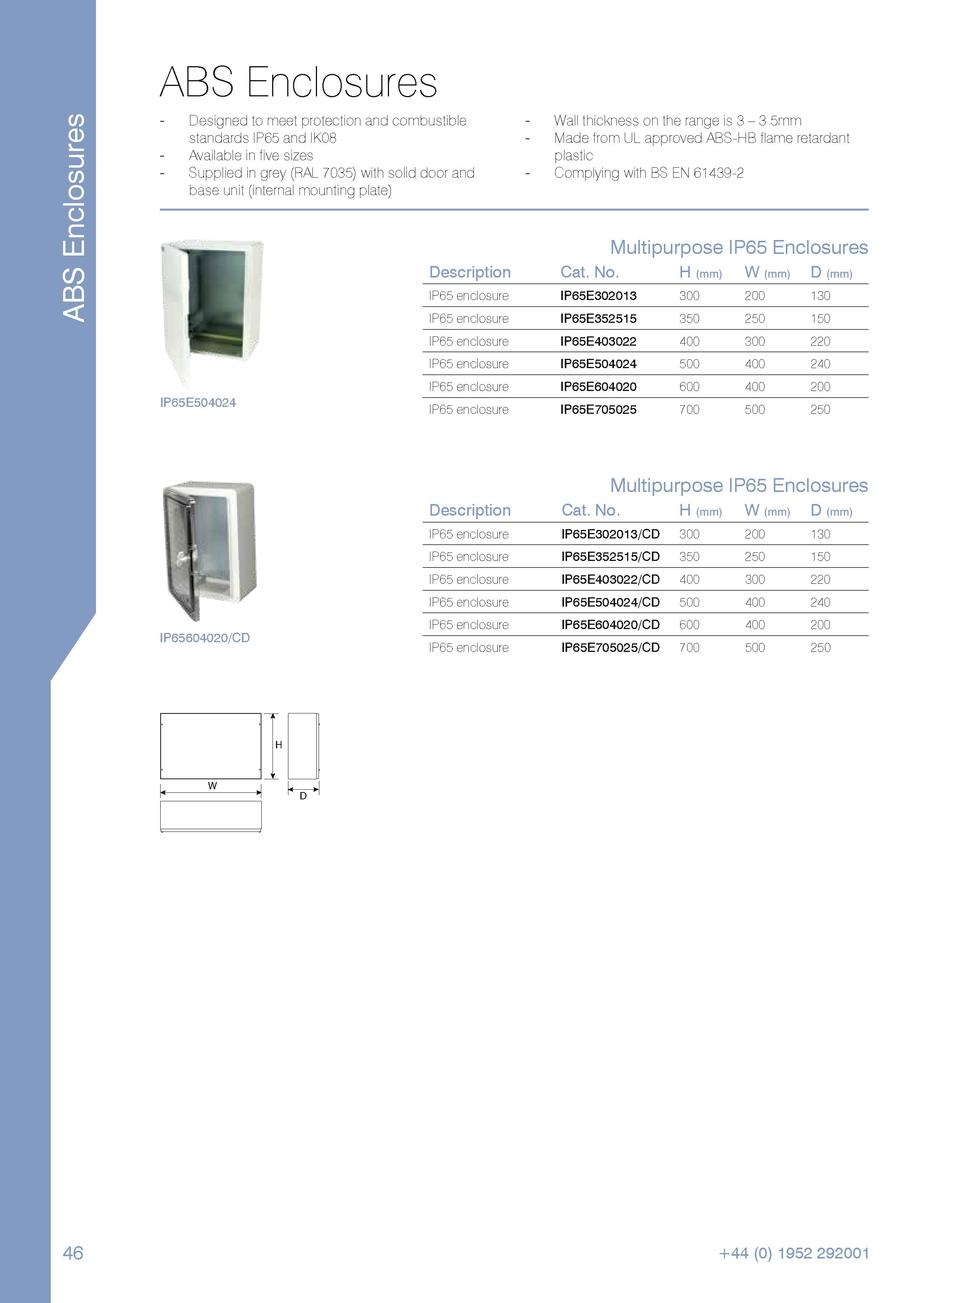 ABS Enclosures  ABS Enclosures ----  Designed to meet protection and combustible standards IP65 and IK08. Available in fiv...